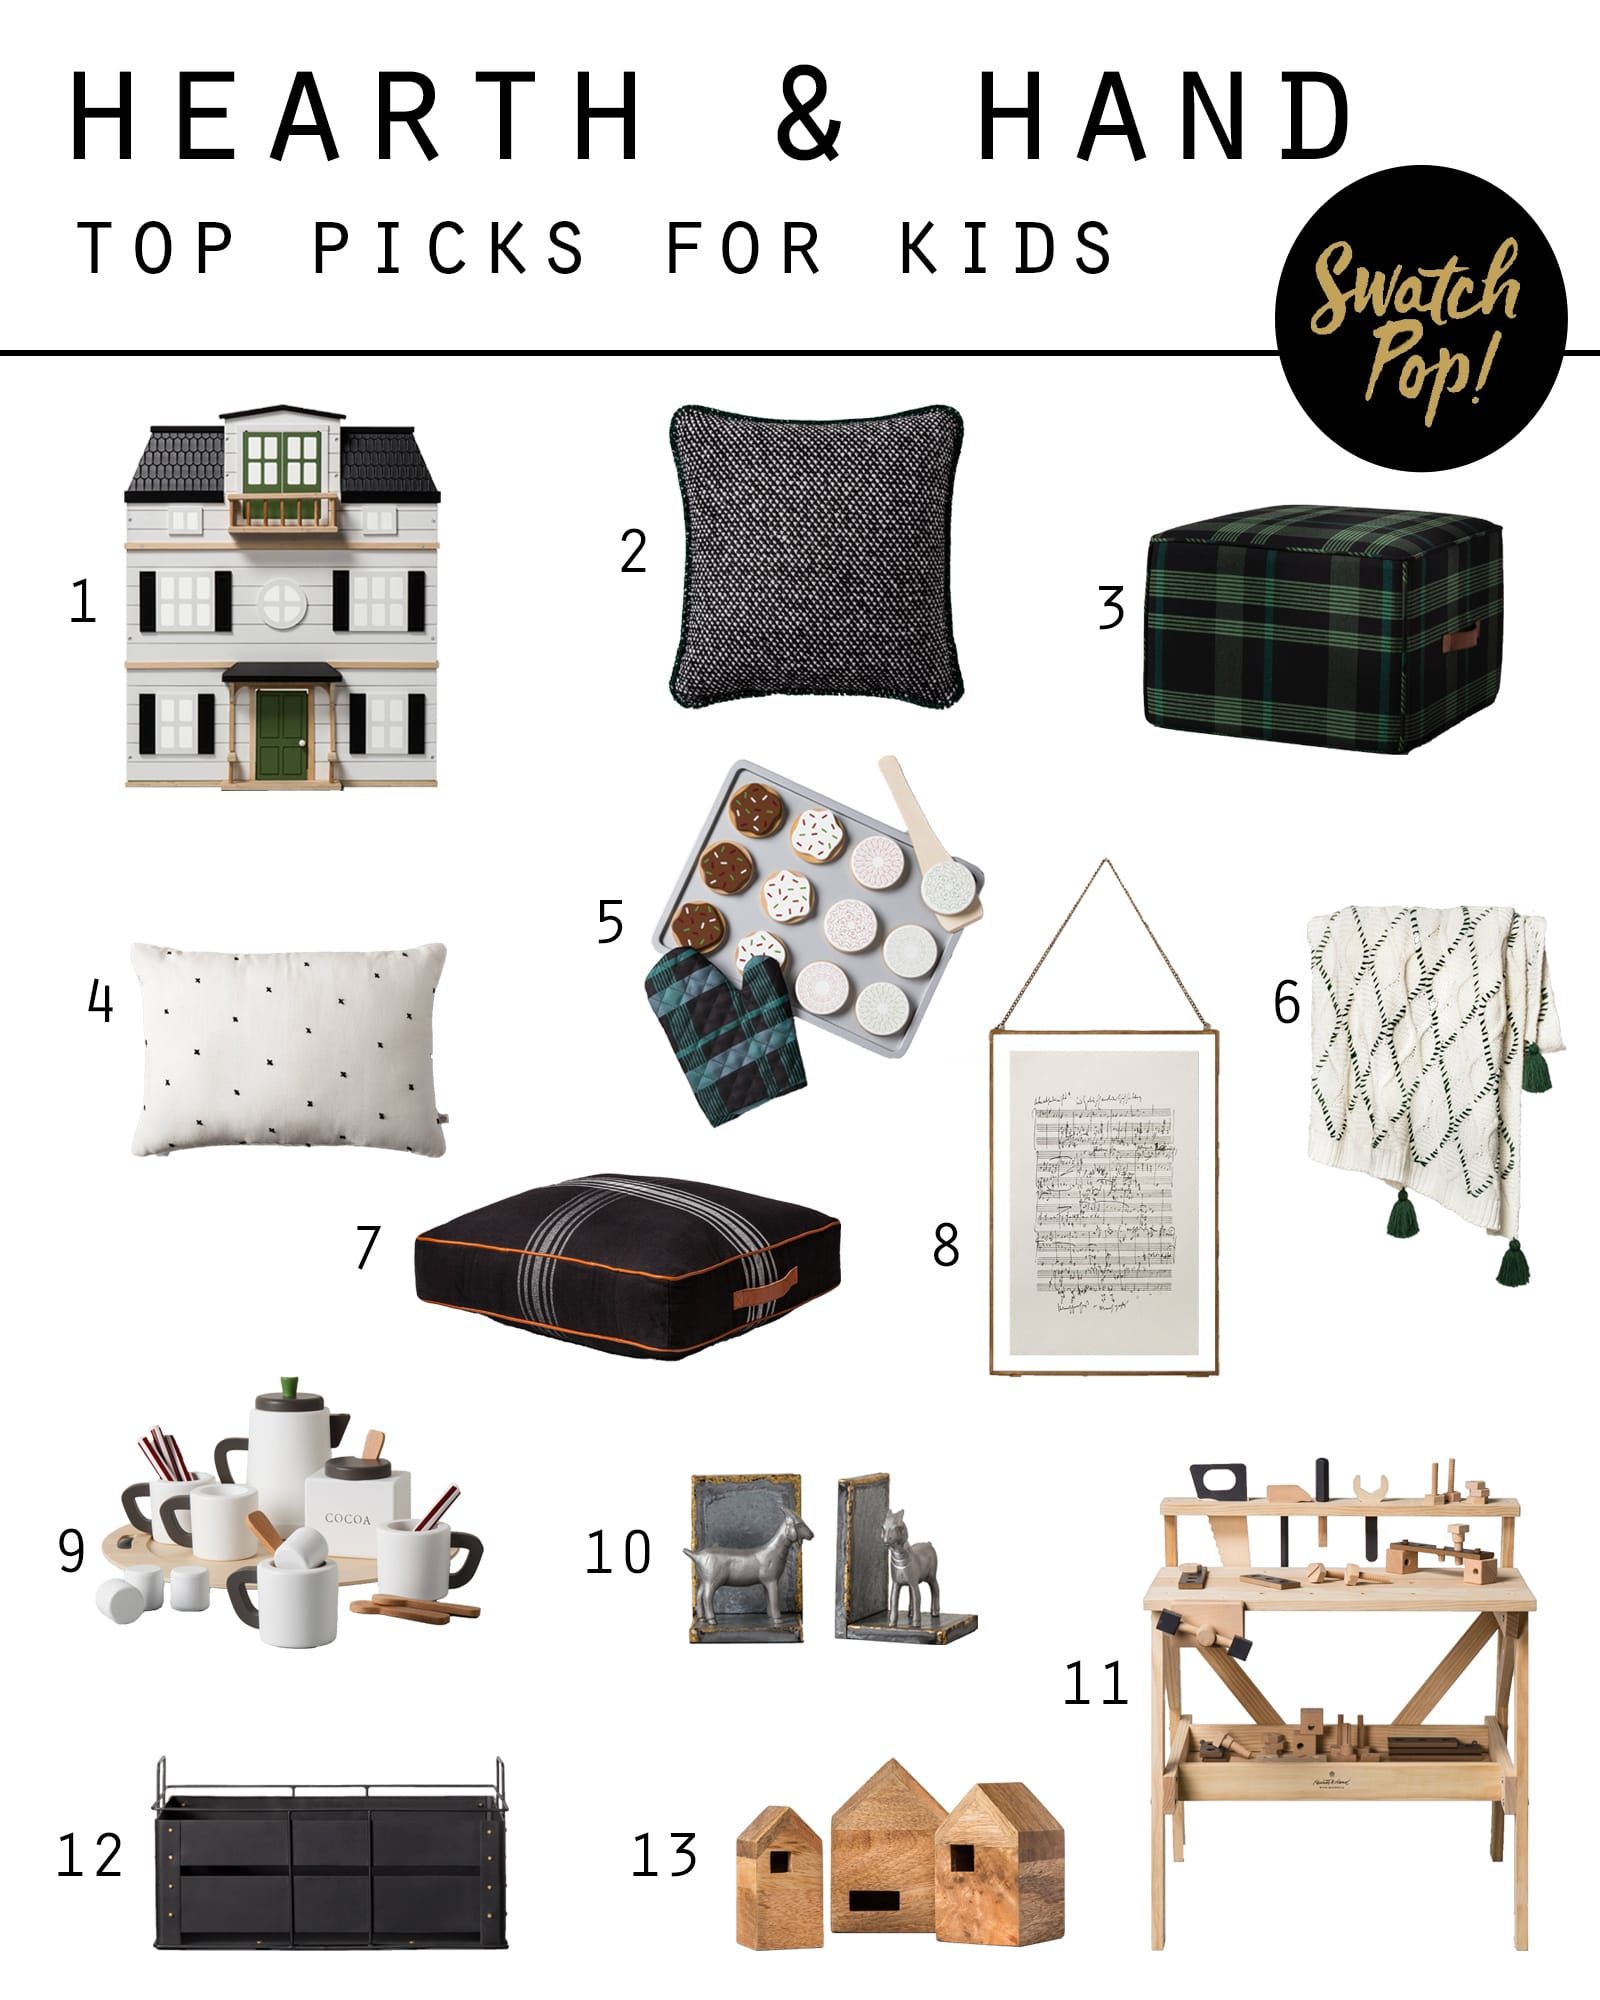 Health & Hand Top Picks for Kids